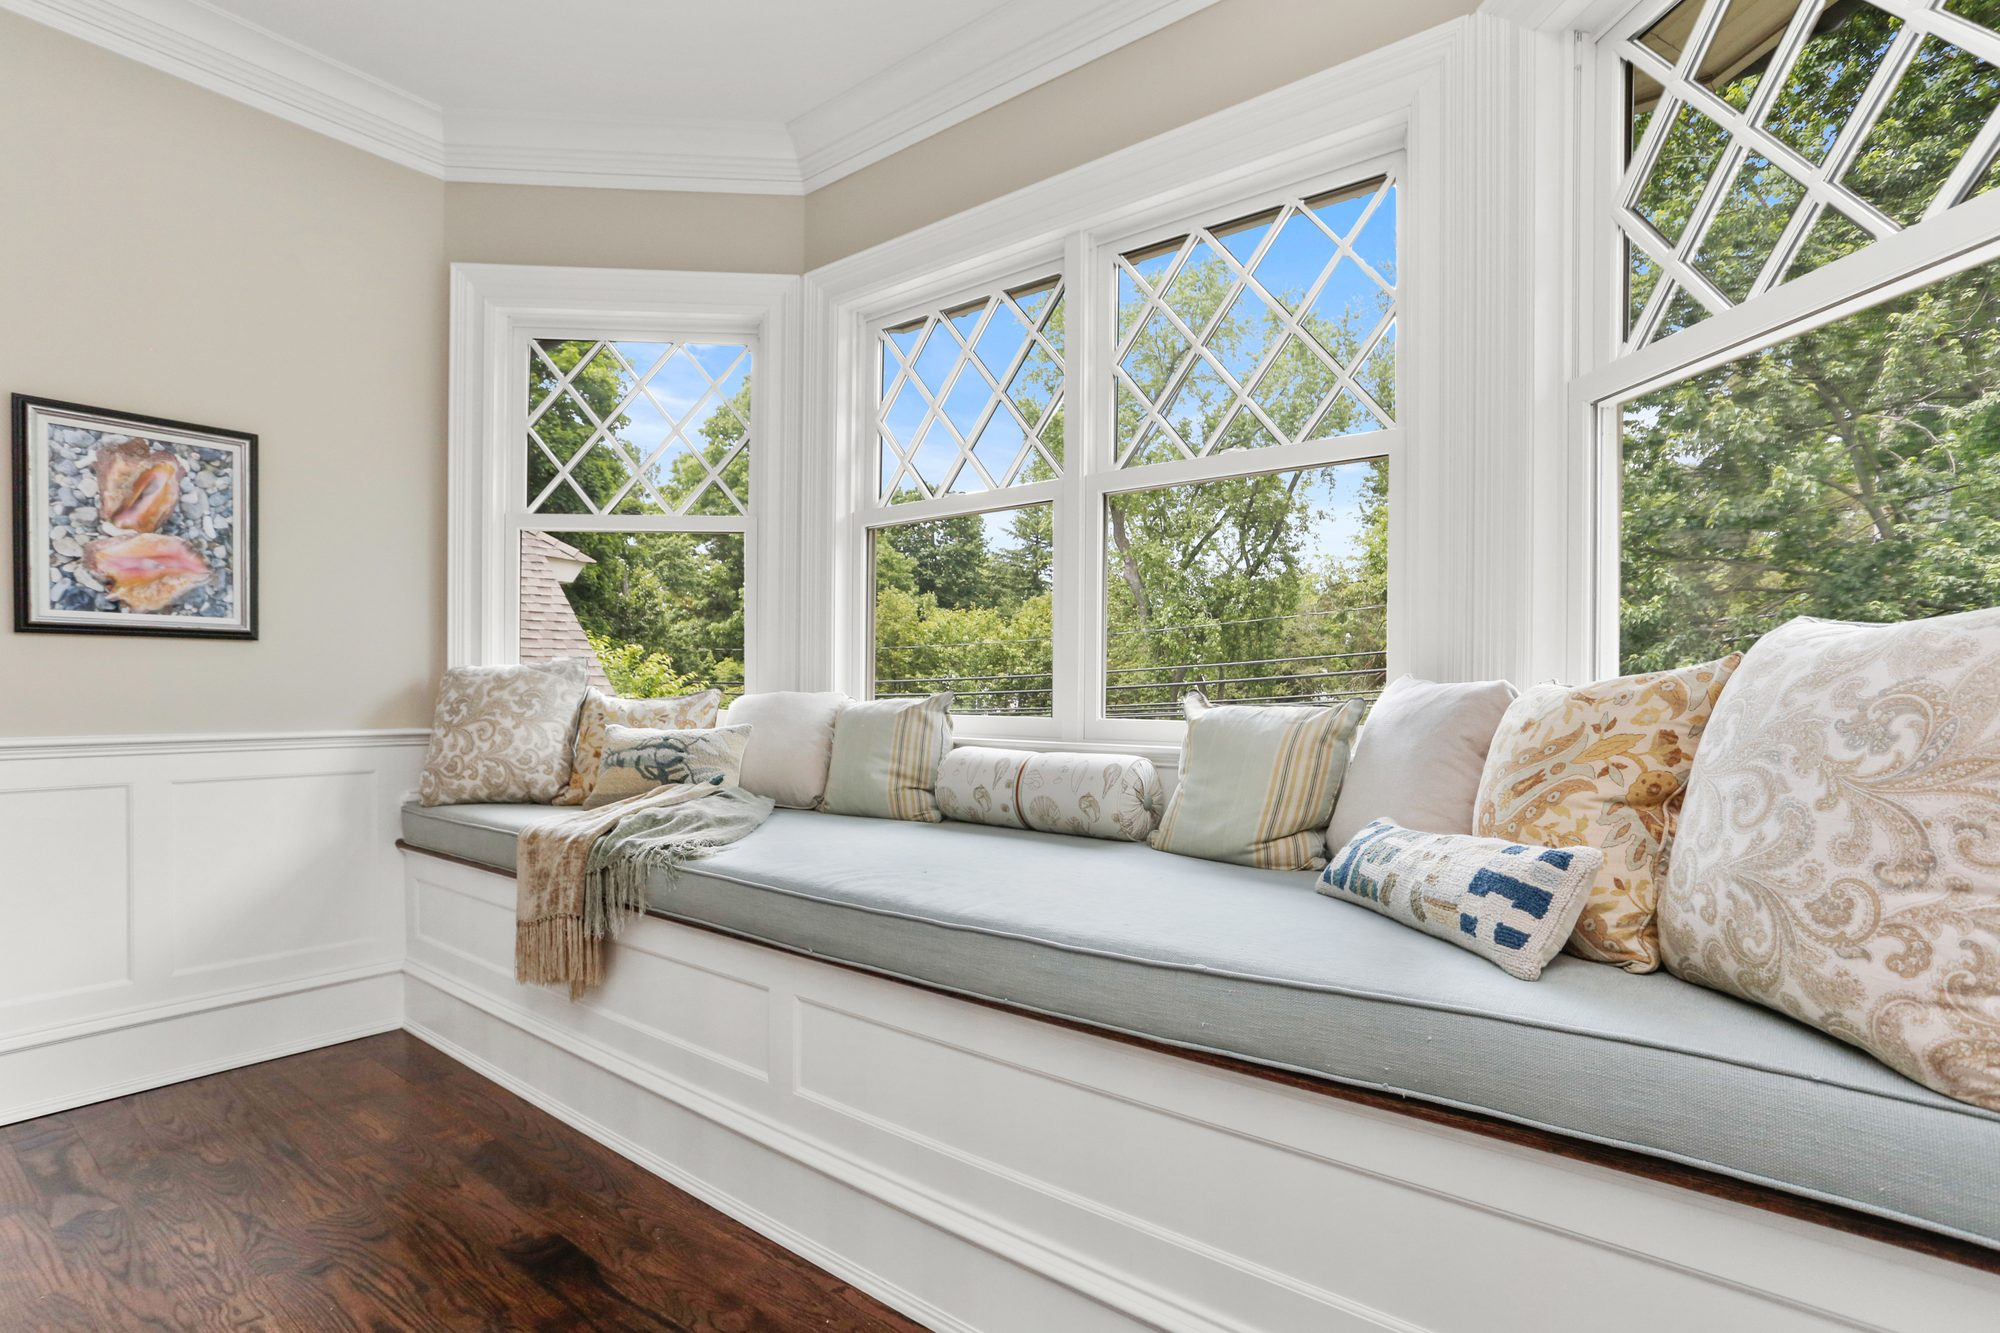 Large bay window with a window seat featuring a 4 inch cushion and lots of pillows.